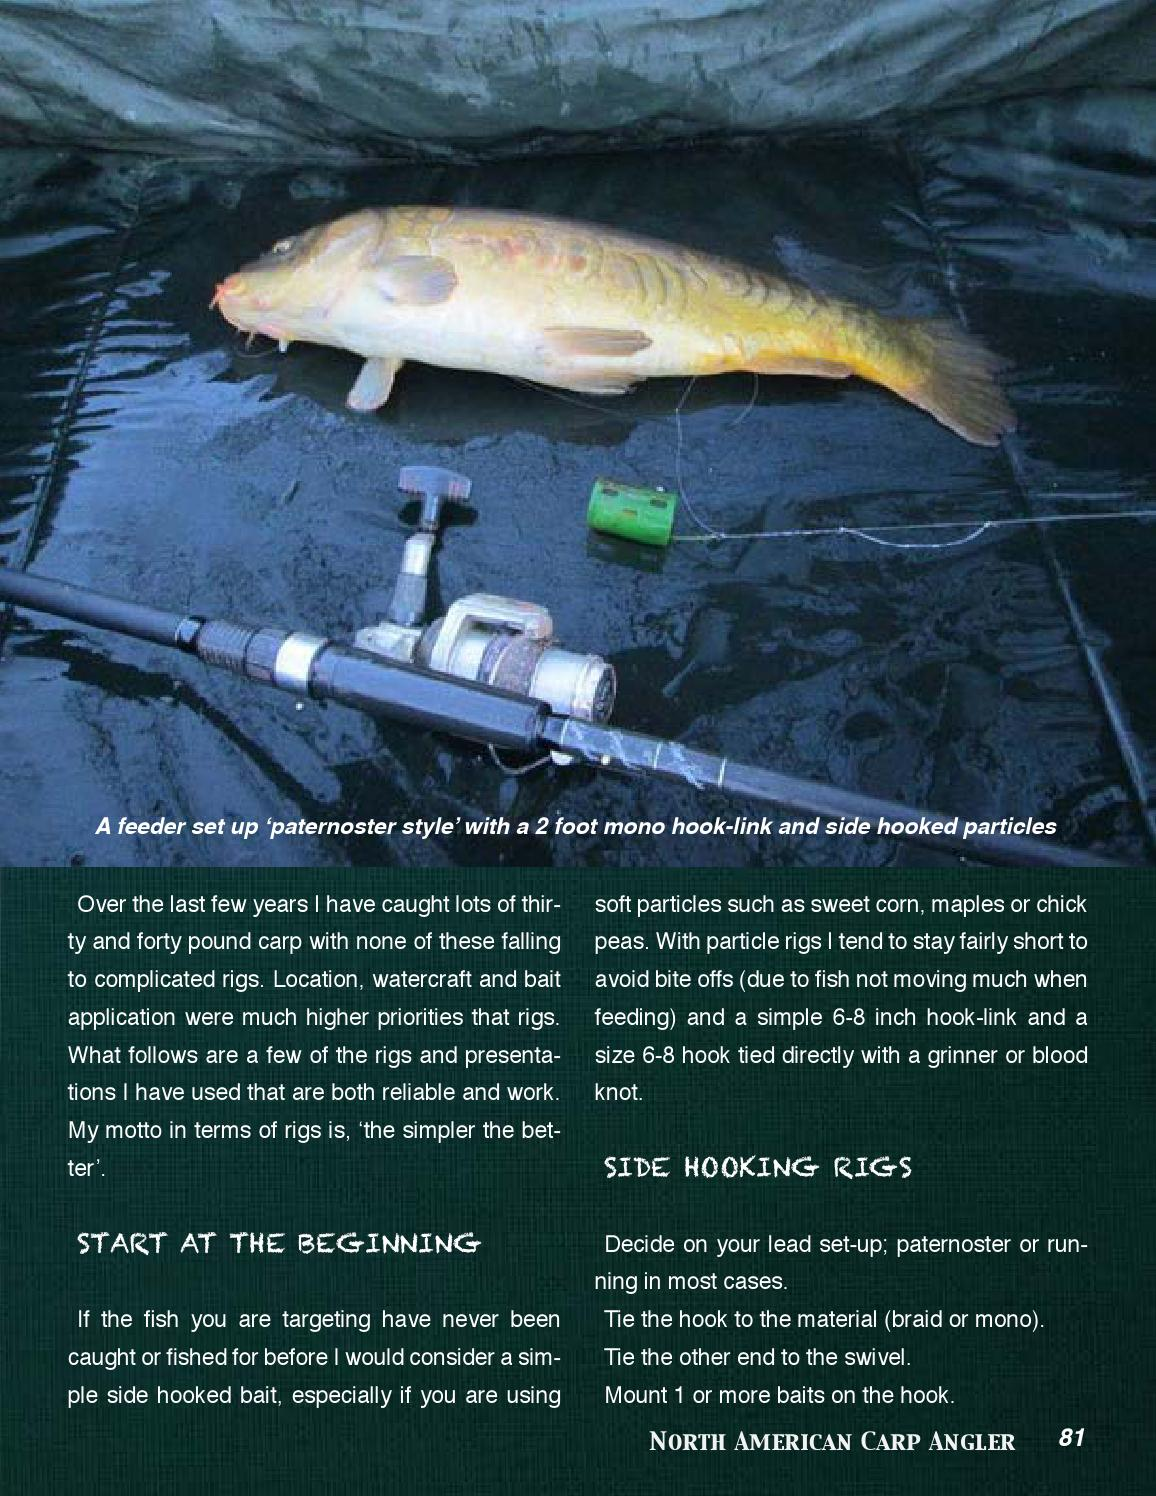 2016 NACA Q1 by North American Carp Angler - issuu